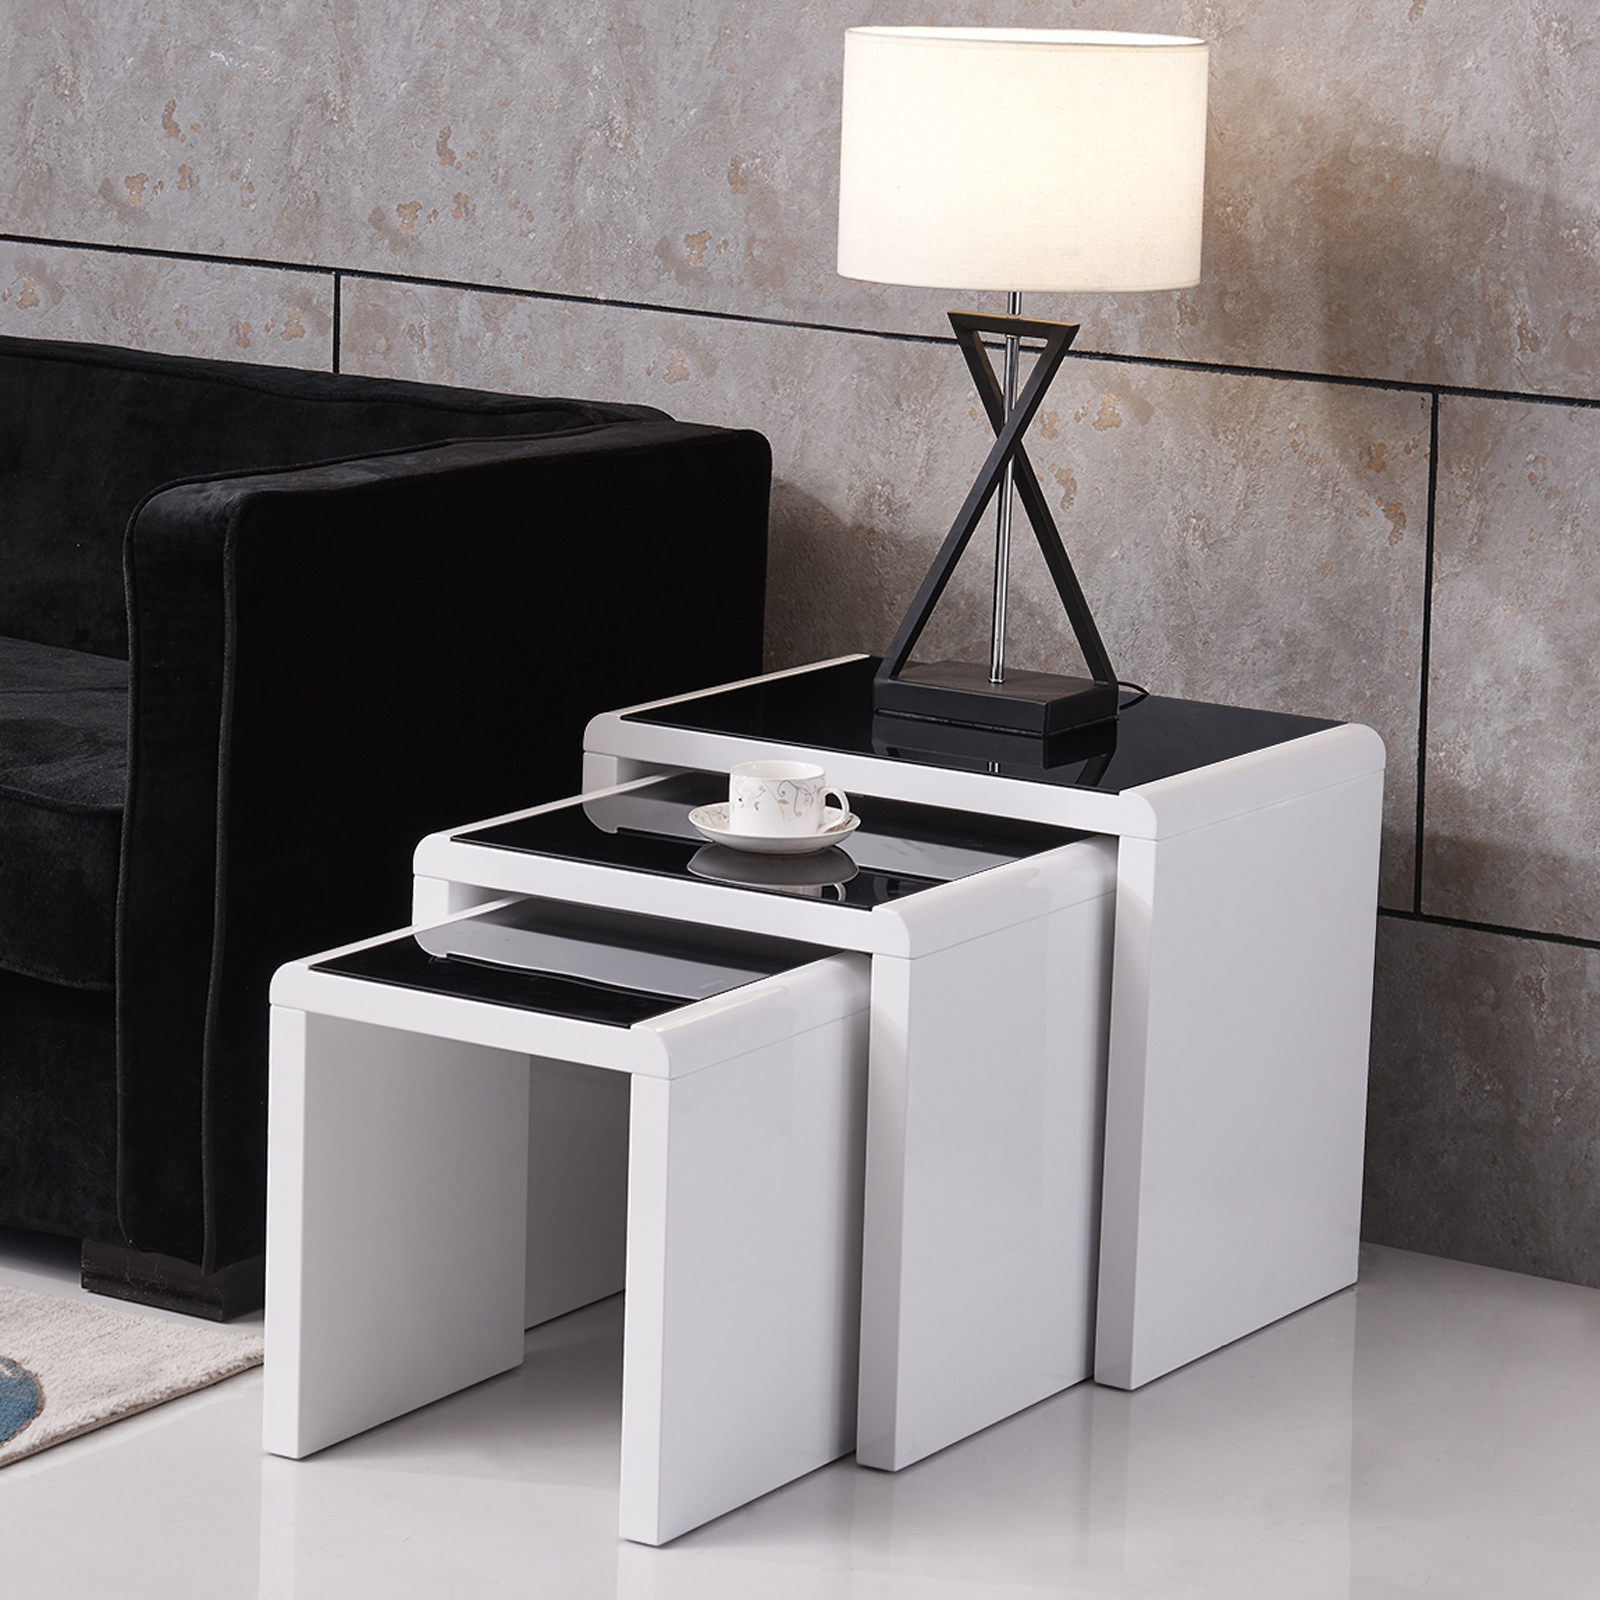 Modern design high gloss white black glass nest of 3 coffee table living room ebay Black and white coffee table